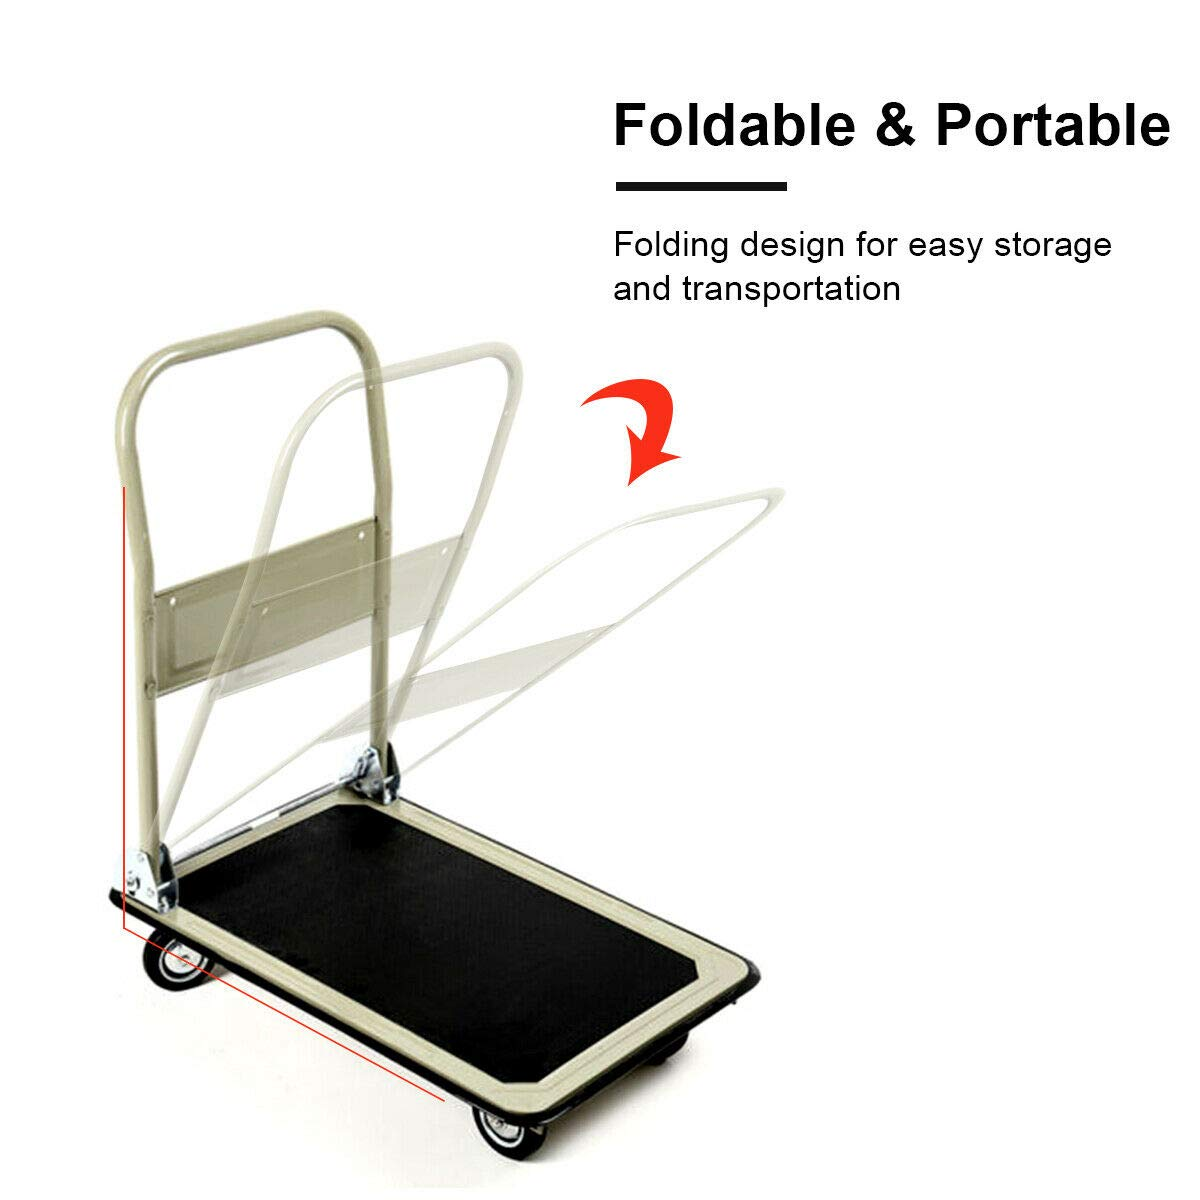 Gray 330lbs Platform Cart Folding Foldable Dolly Push Hand Truck Moving Warehouse Transport Heavy Large Loads(U.S. Stock) by Heize best price (Image #6)